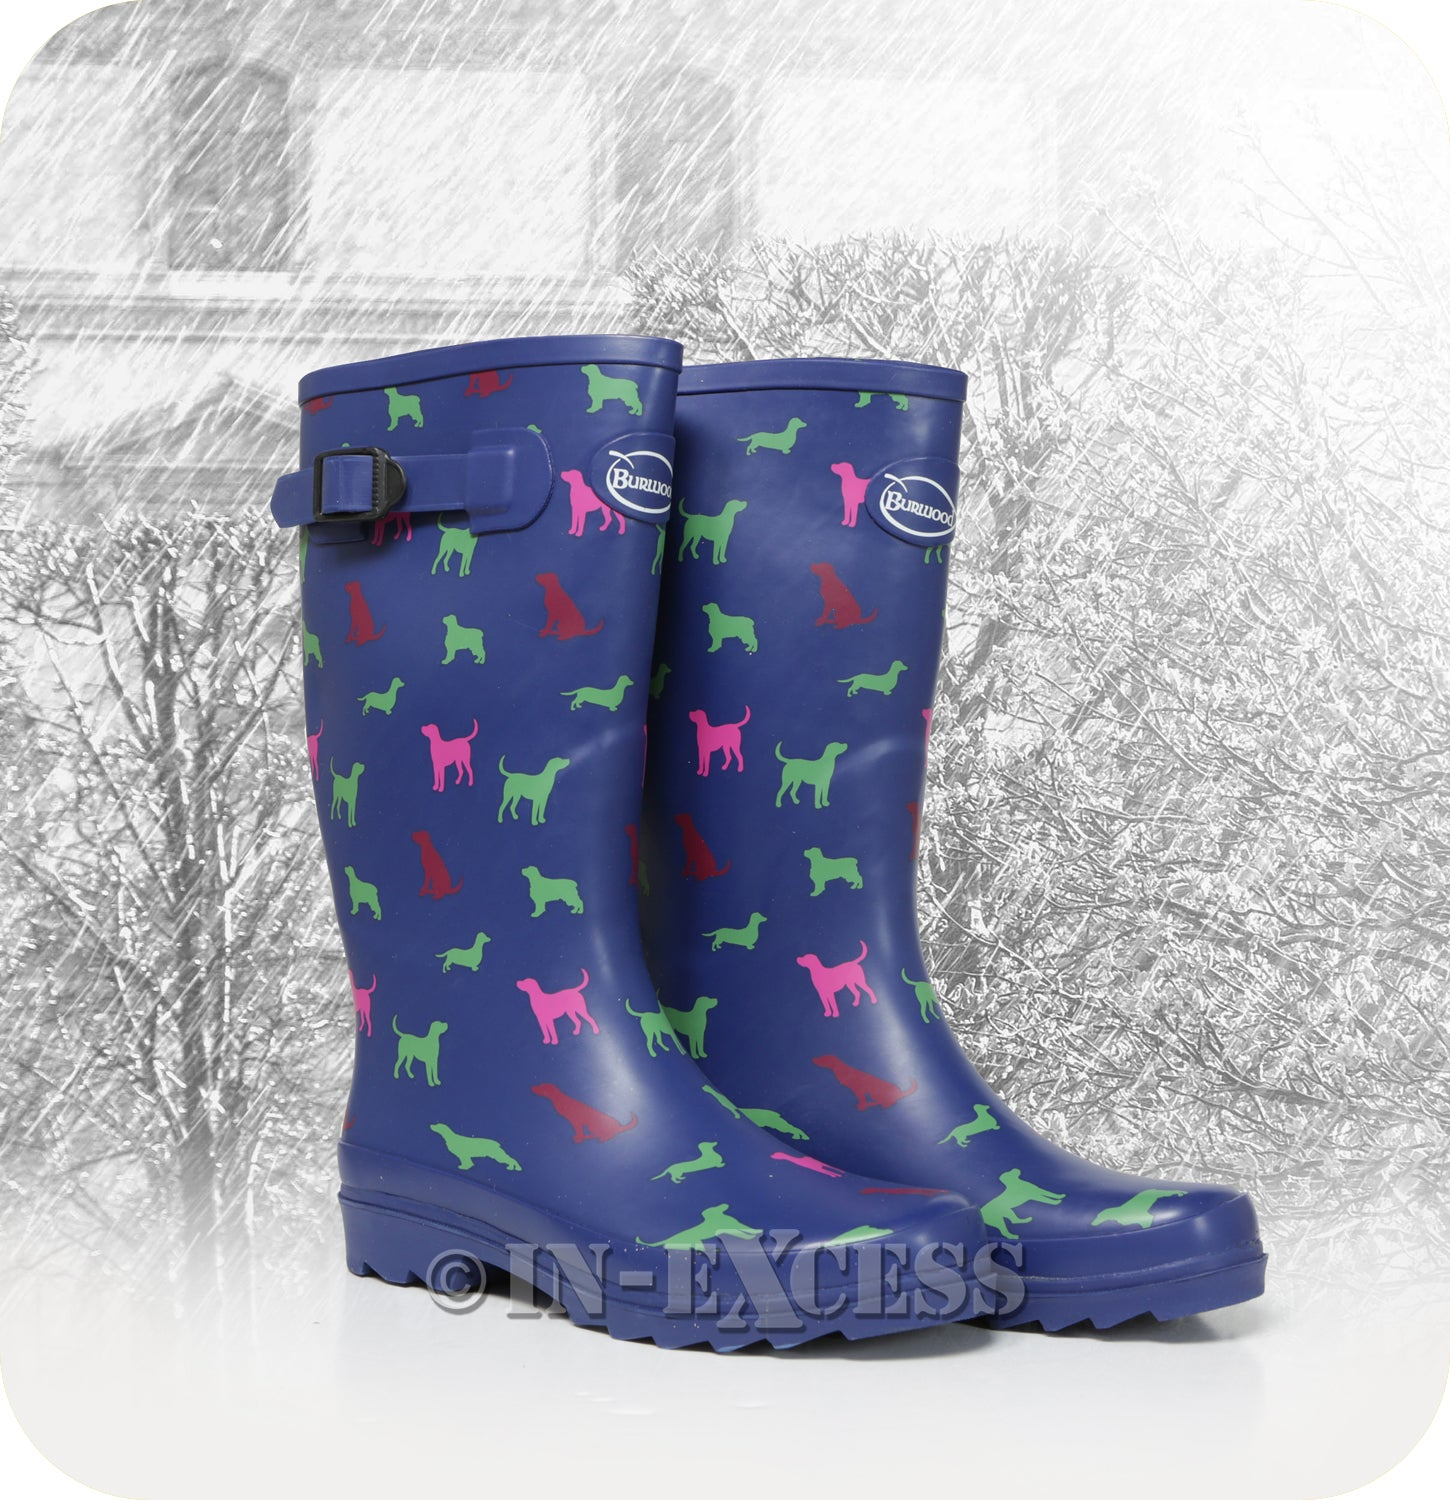 ac1677752 Briers Burwood Adjustable Neoprene Lined Wellington Walking Boots - Dog  Patterned Wellies